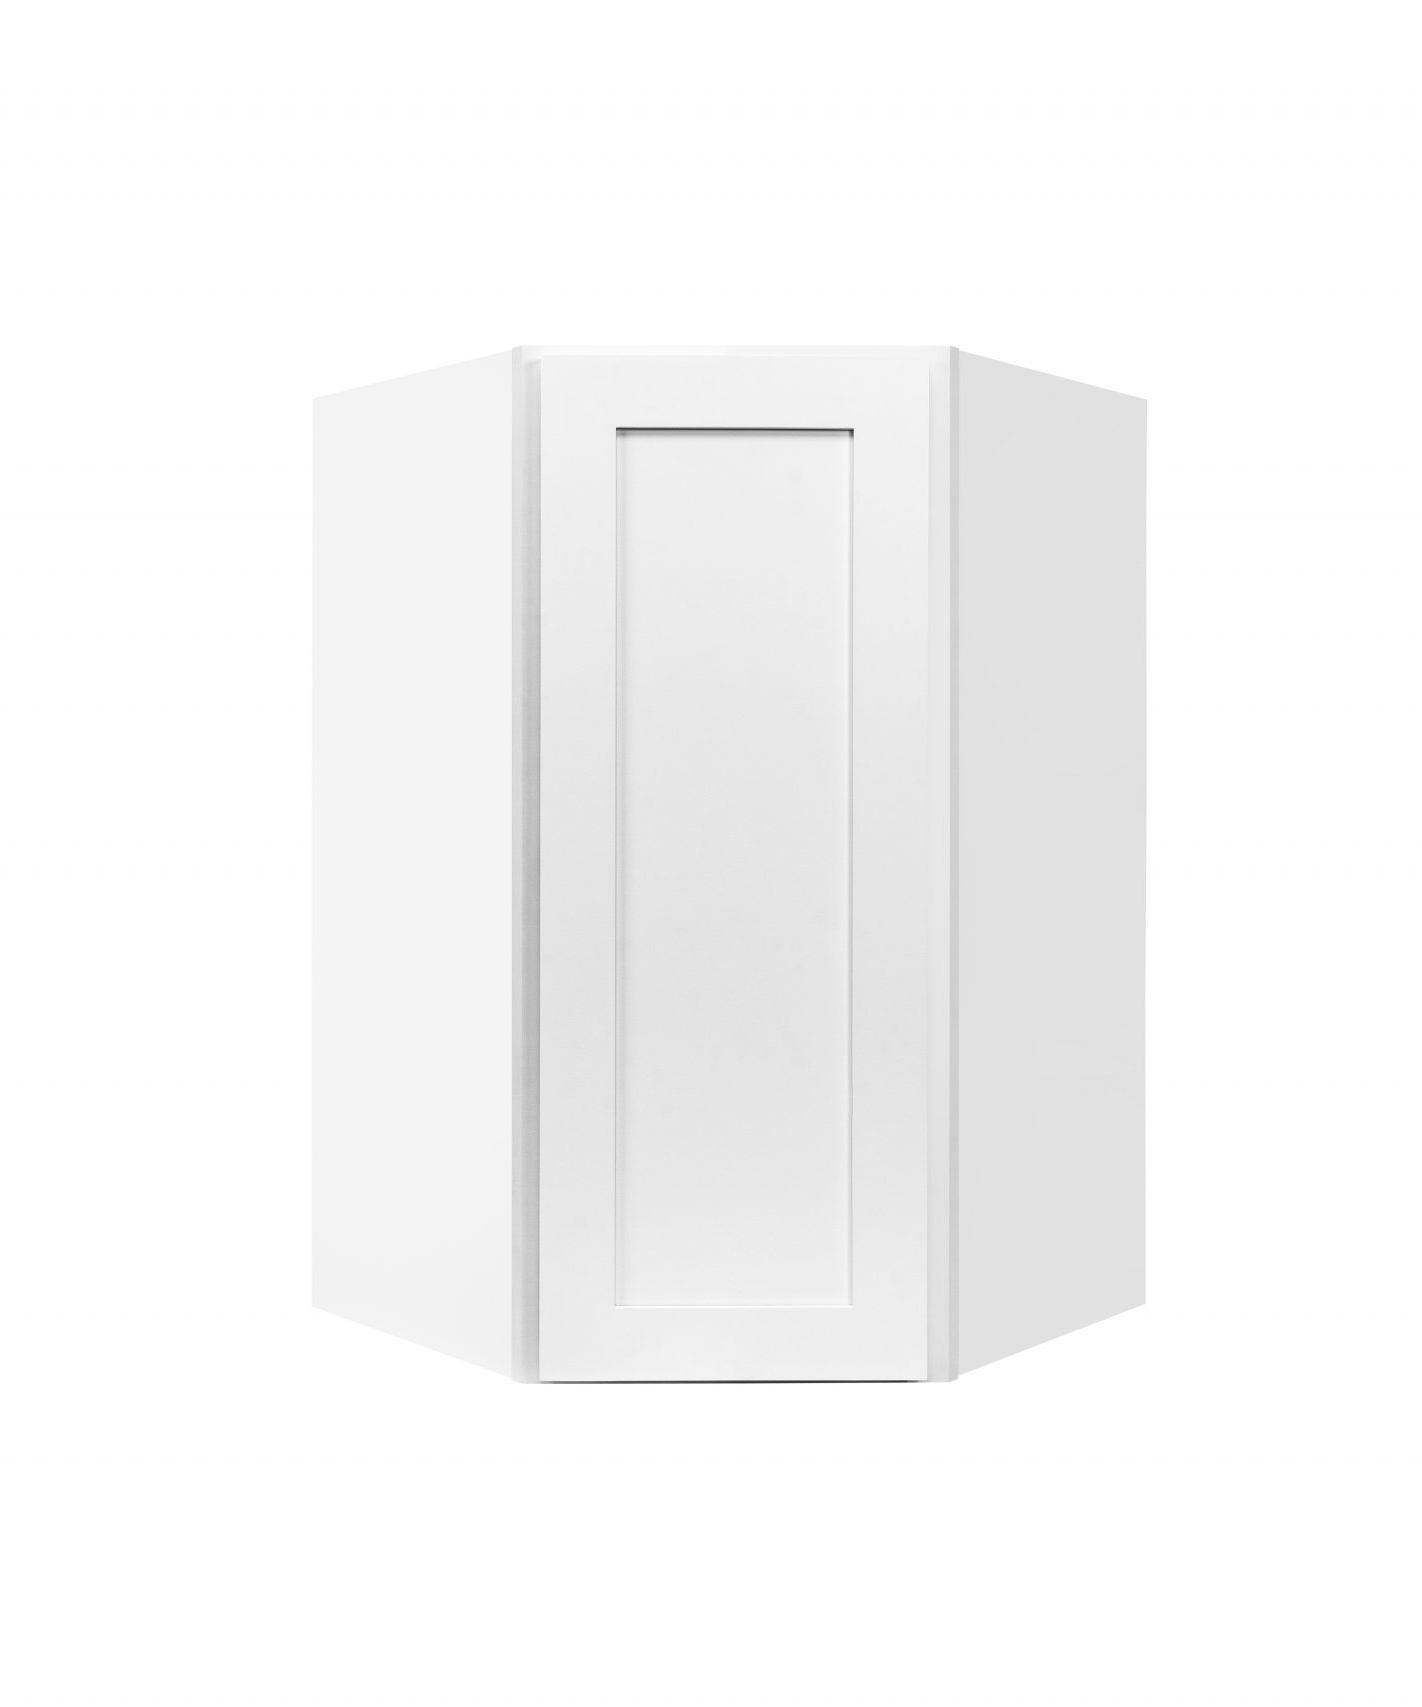 White Shaker Cabinetry WDC24